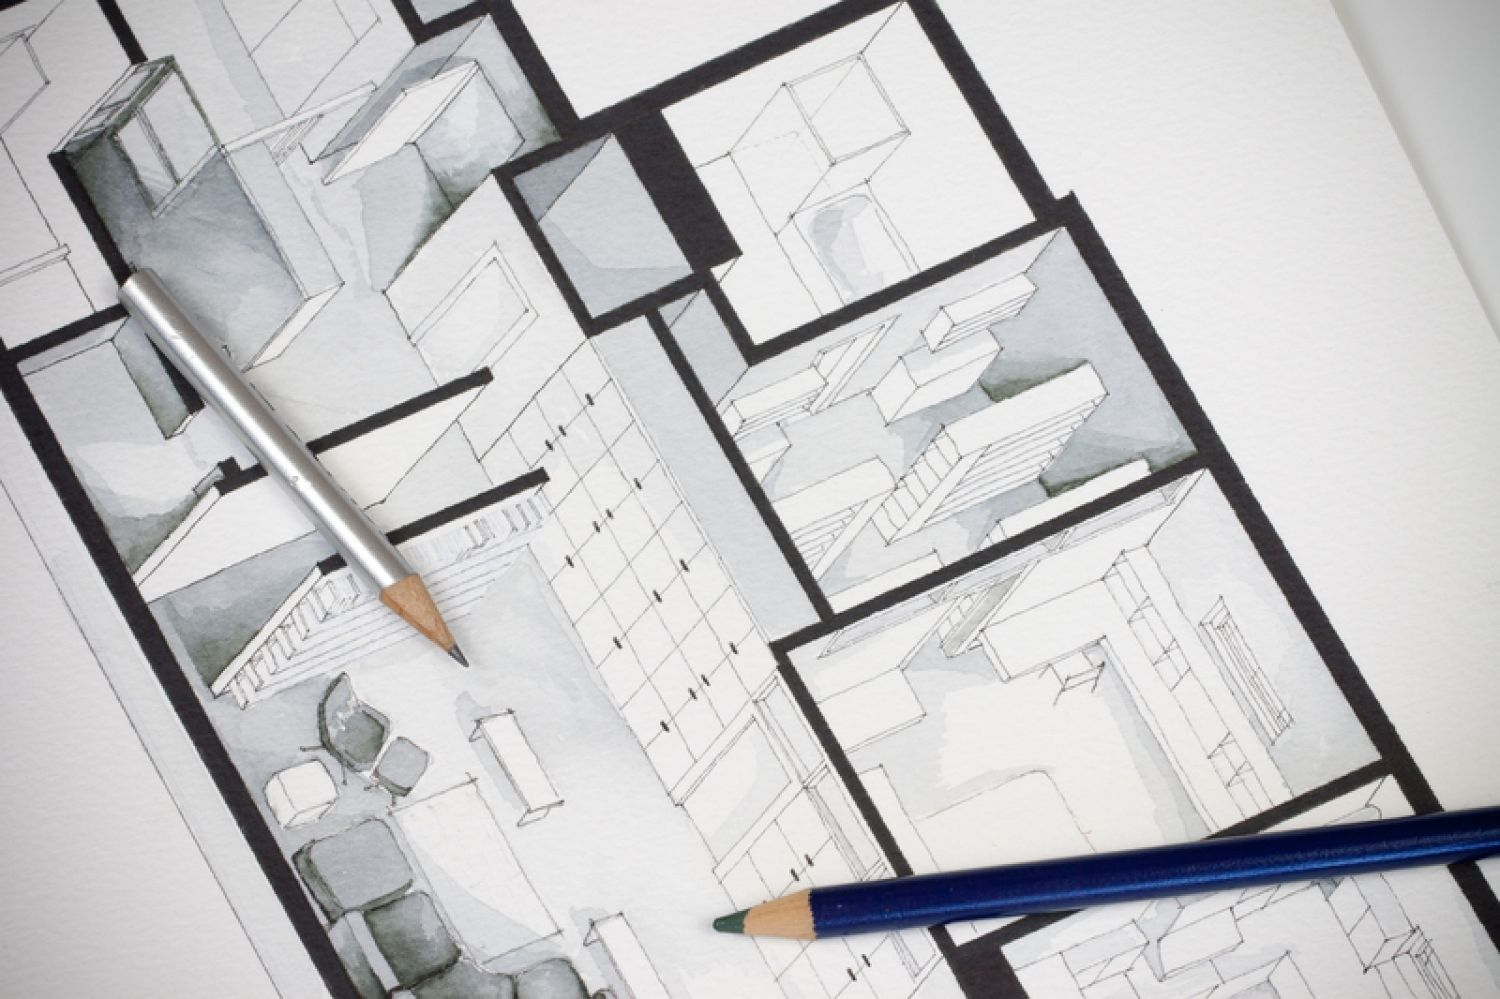 Choosing The Regina Custom Home Builder That Is Right For You - Is There A Design Fit